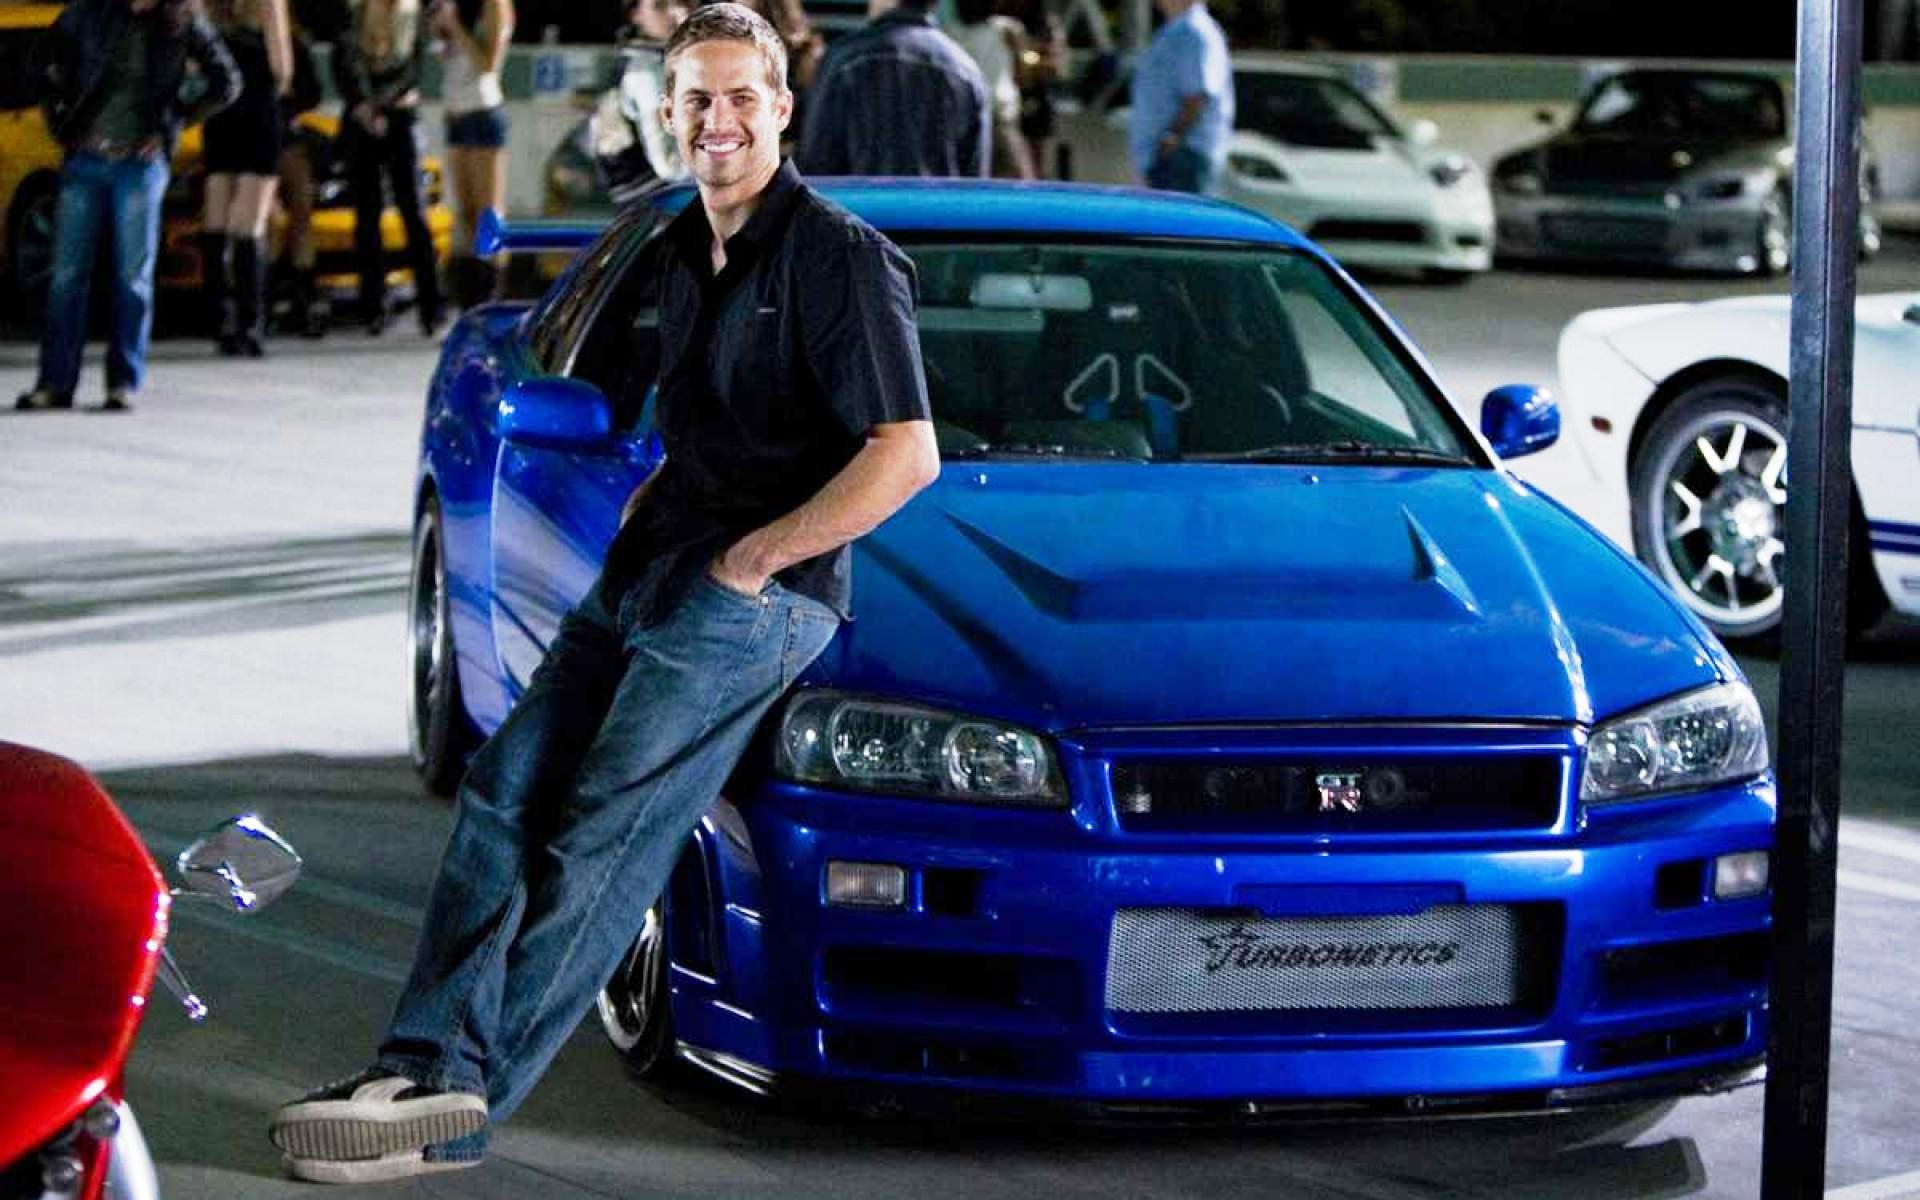 Fast And Furious Paul Walker Blue Car Wallpaper Wallpaper Hd Celebrities 4k Wallpapers Images Photos And Background